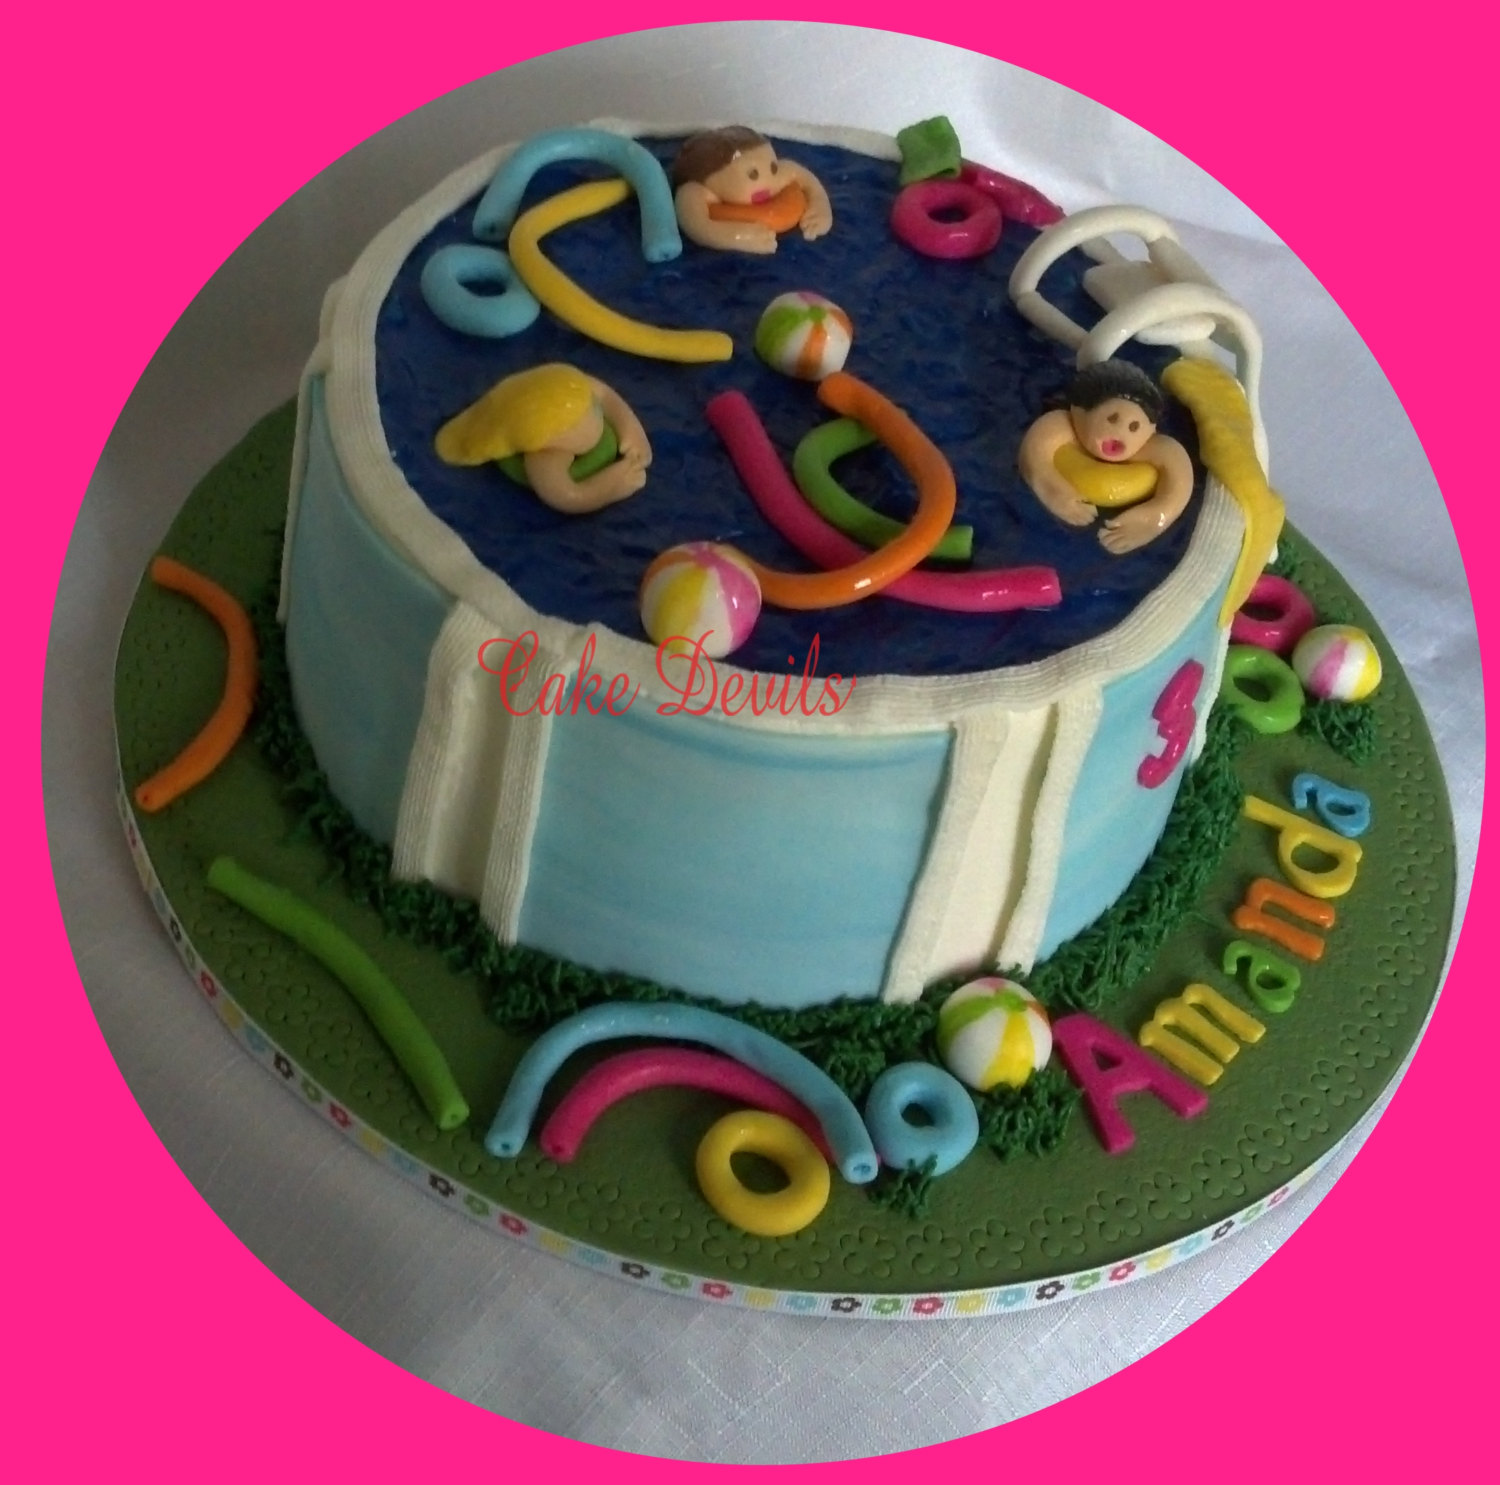 Edible Cake Images Nj : Pool Party Cake Topper Kit - Fondant, Handmade Edible ...